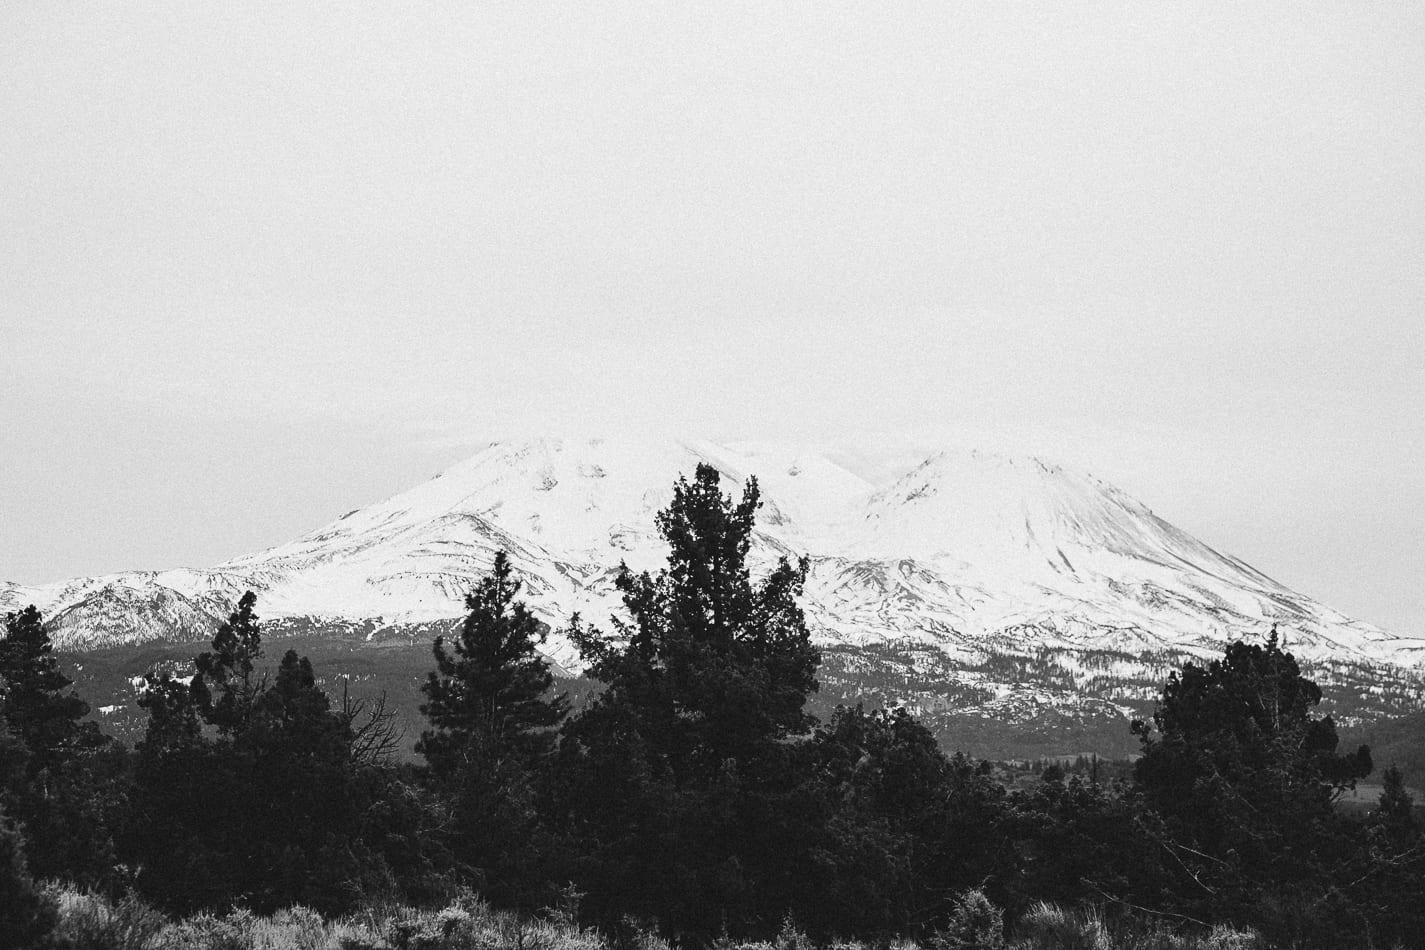 pluto-cave-mount-shasta-lifestyle-portrati-photo-35